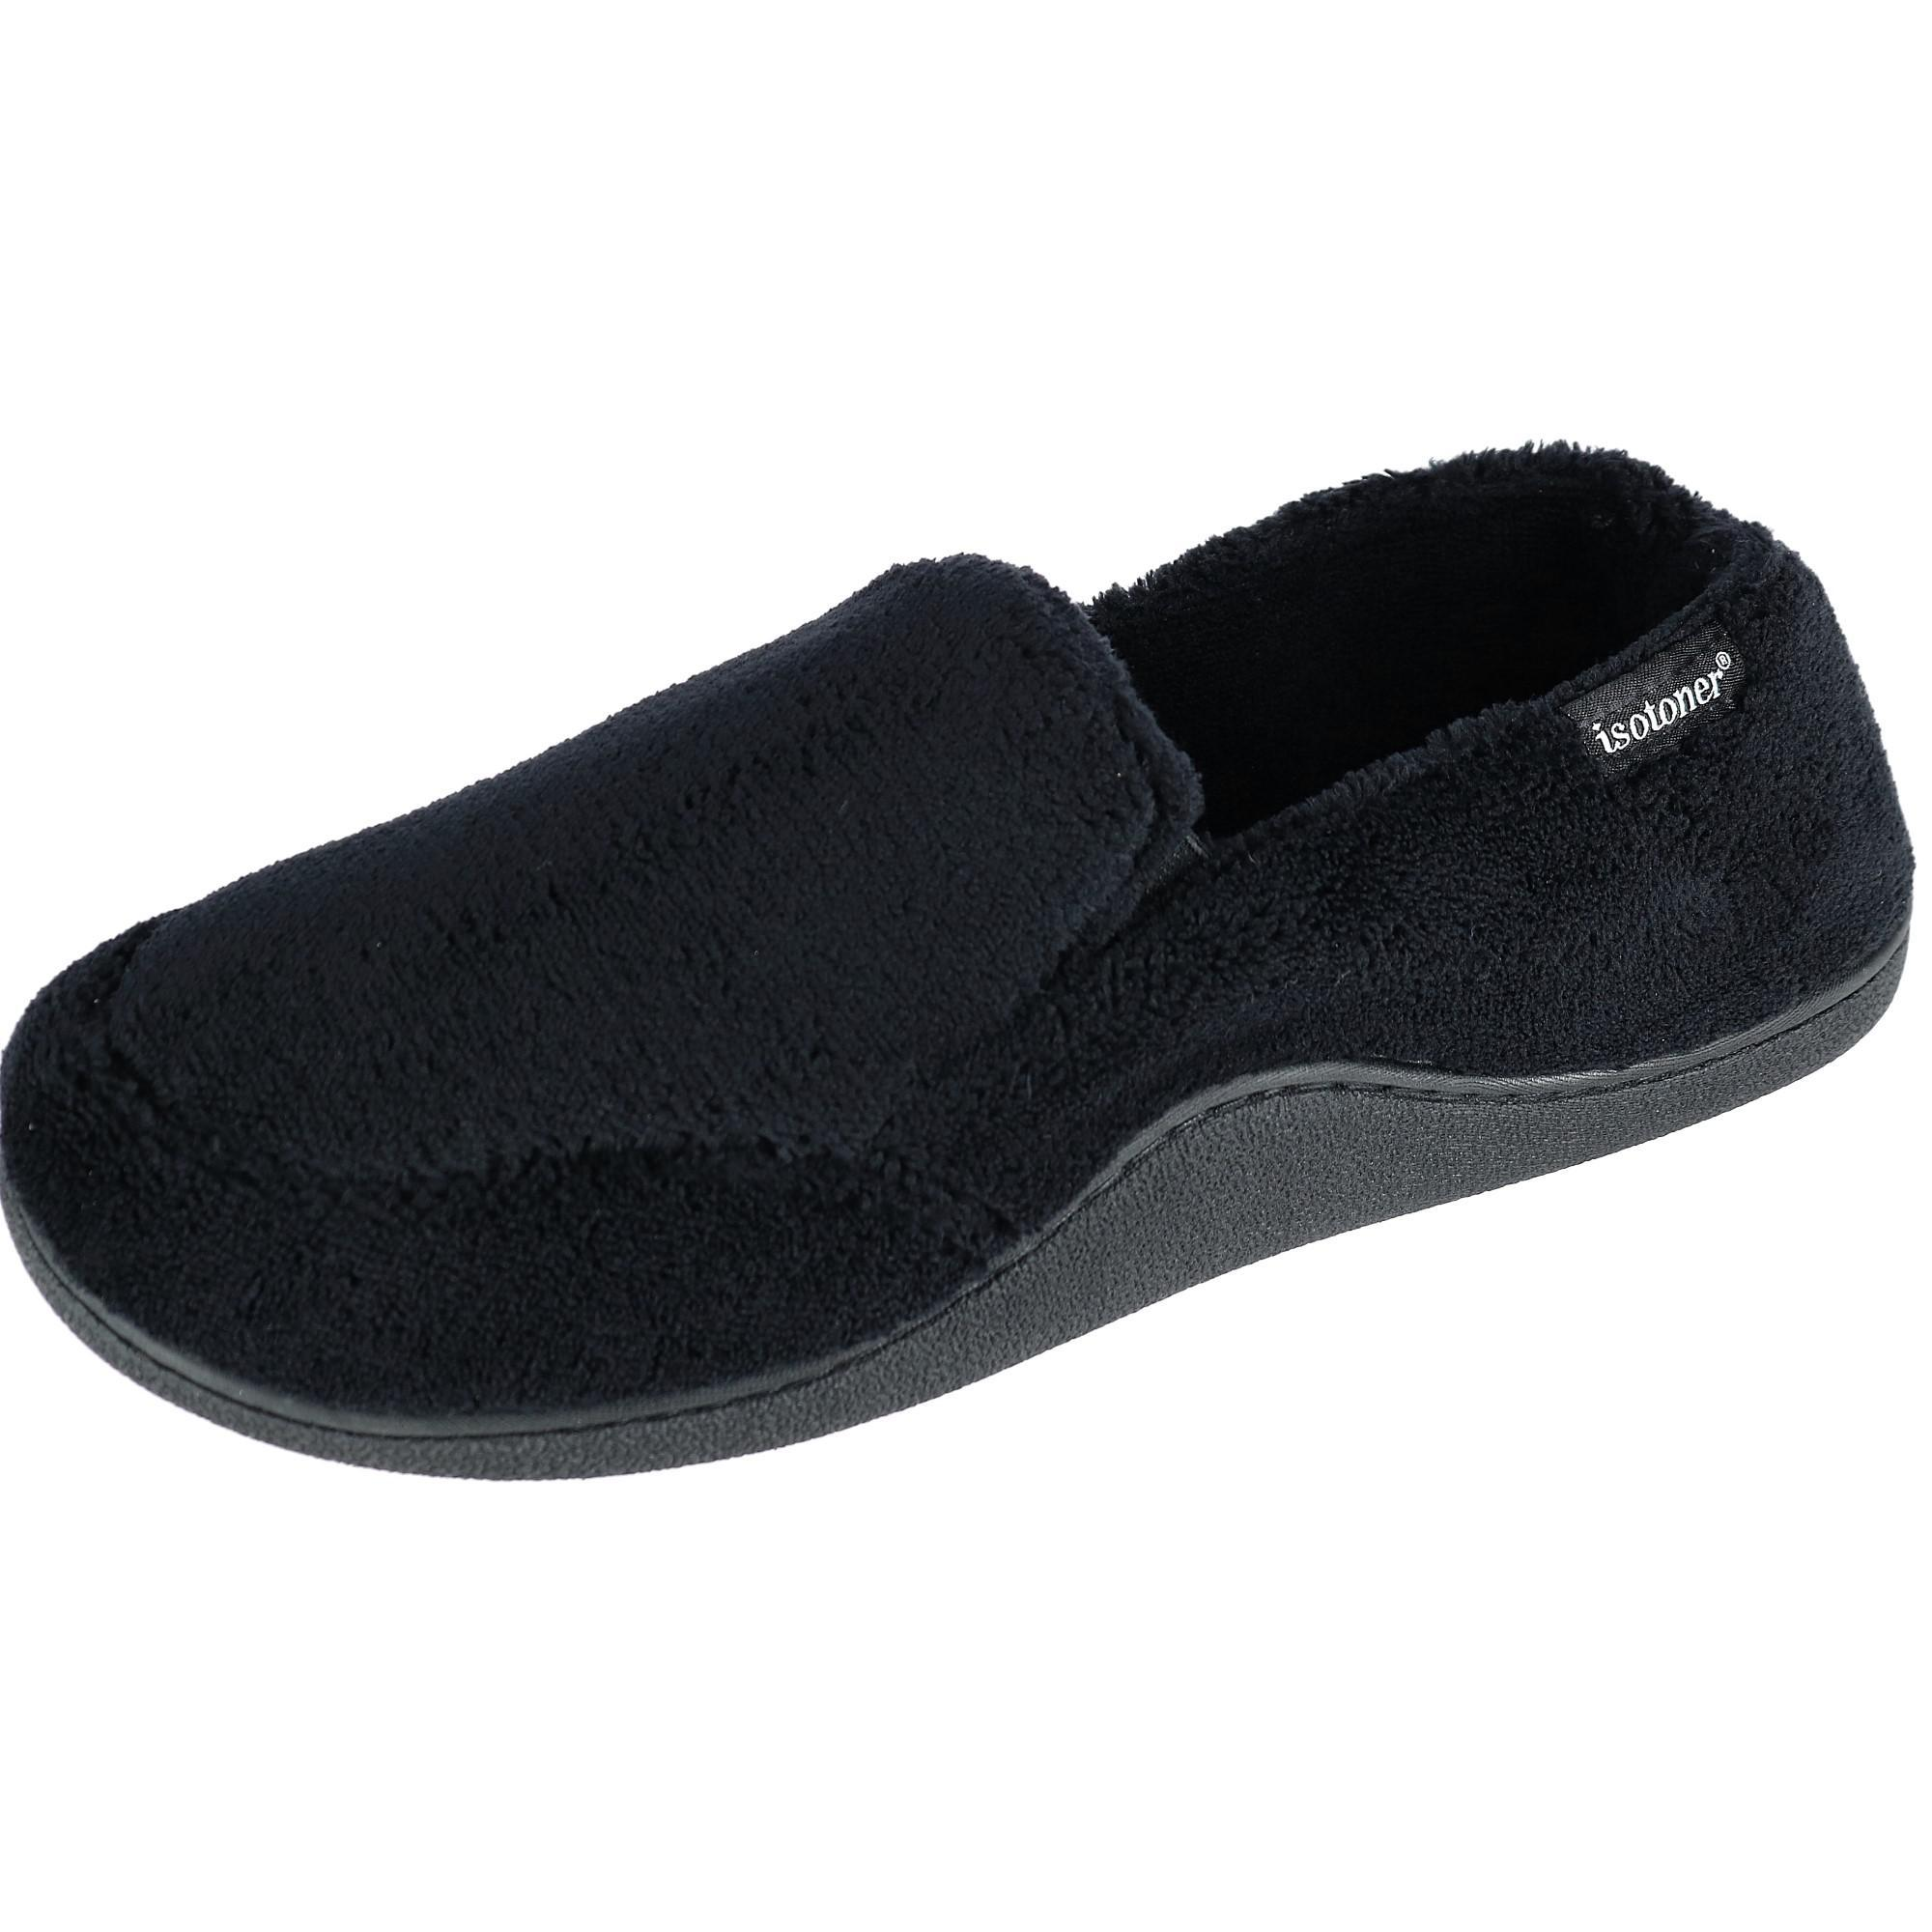 Isotoner_Mens_Microterry_Memory_Foam_IndoorOutdoor_SlipOn_Slippers